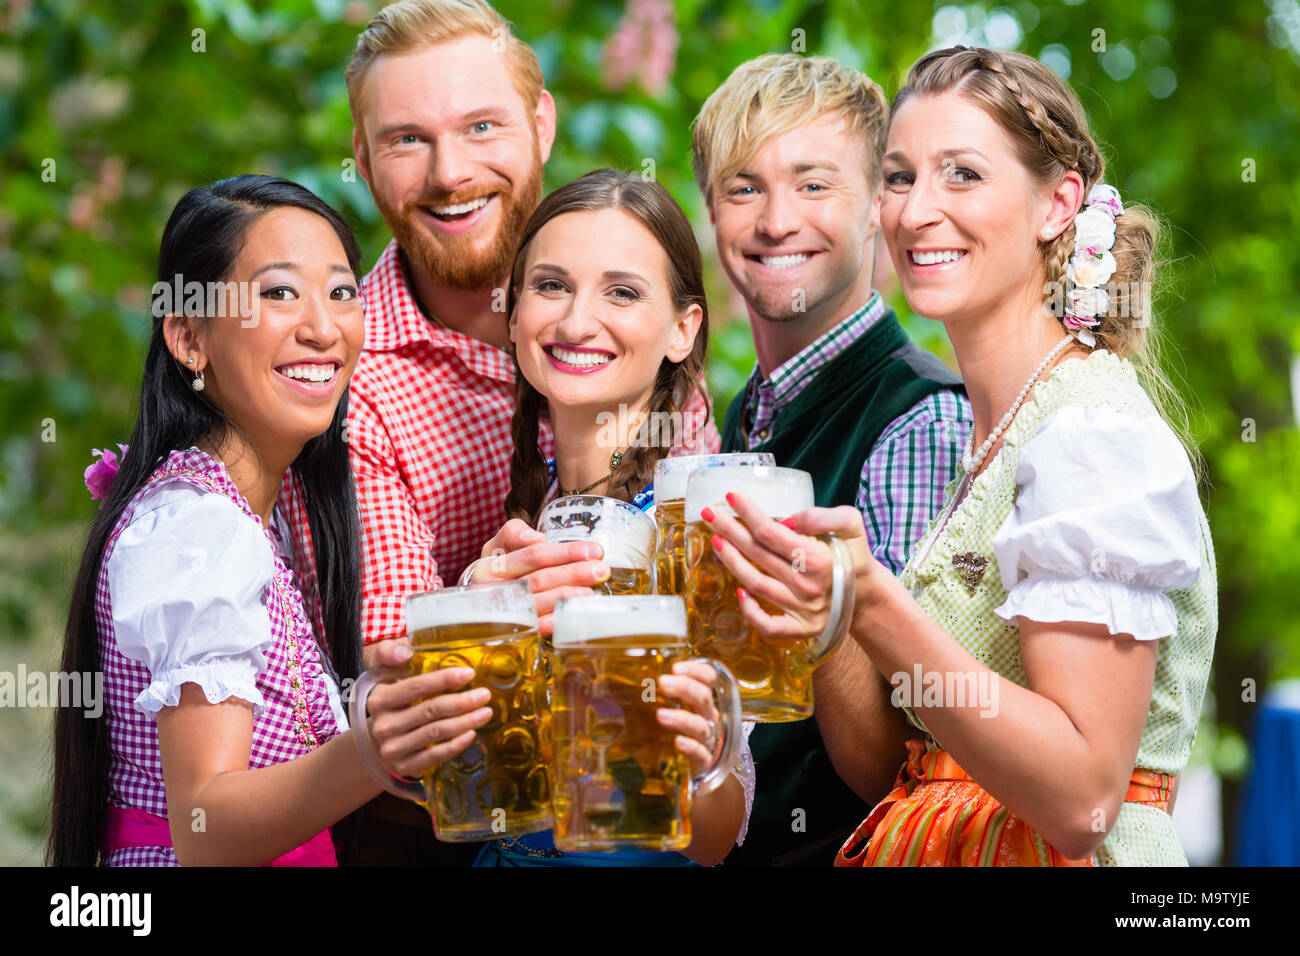 Friends having fun in beer garden while clinking glasses - Stock Image